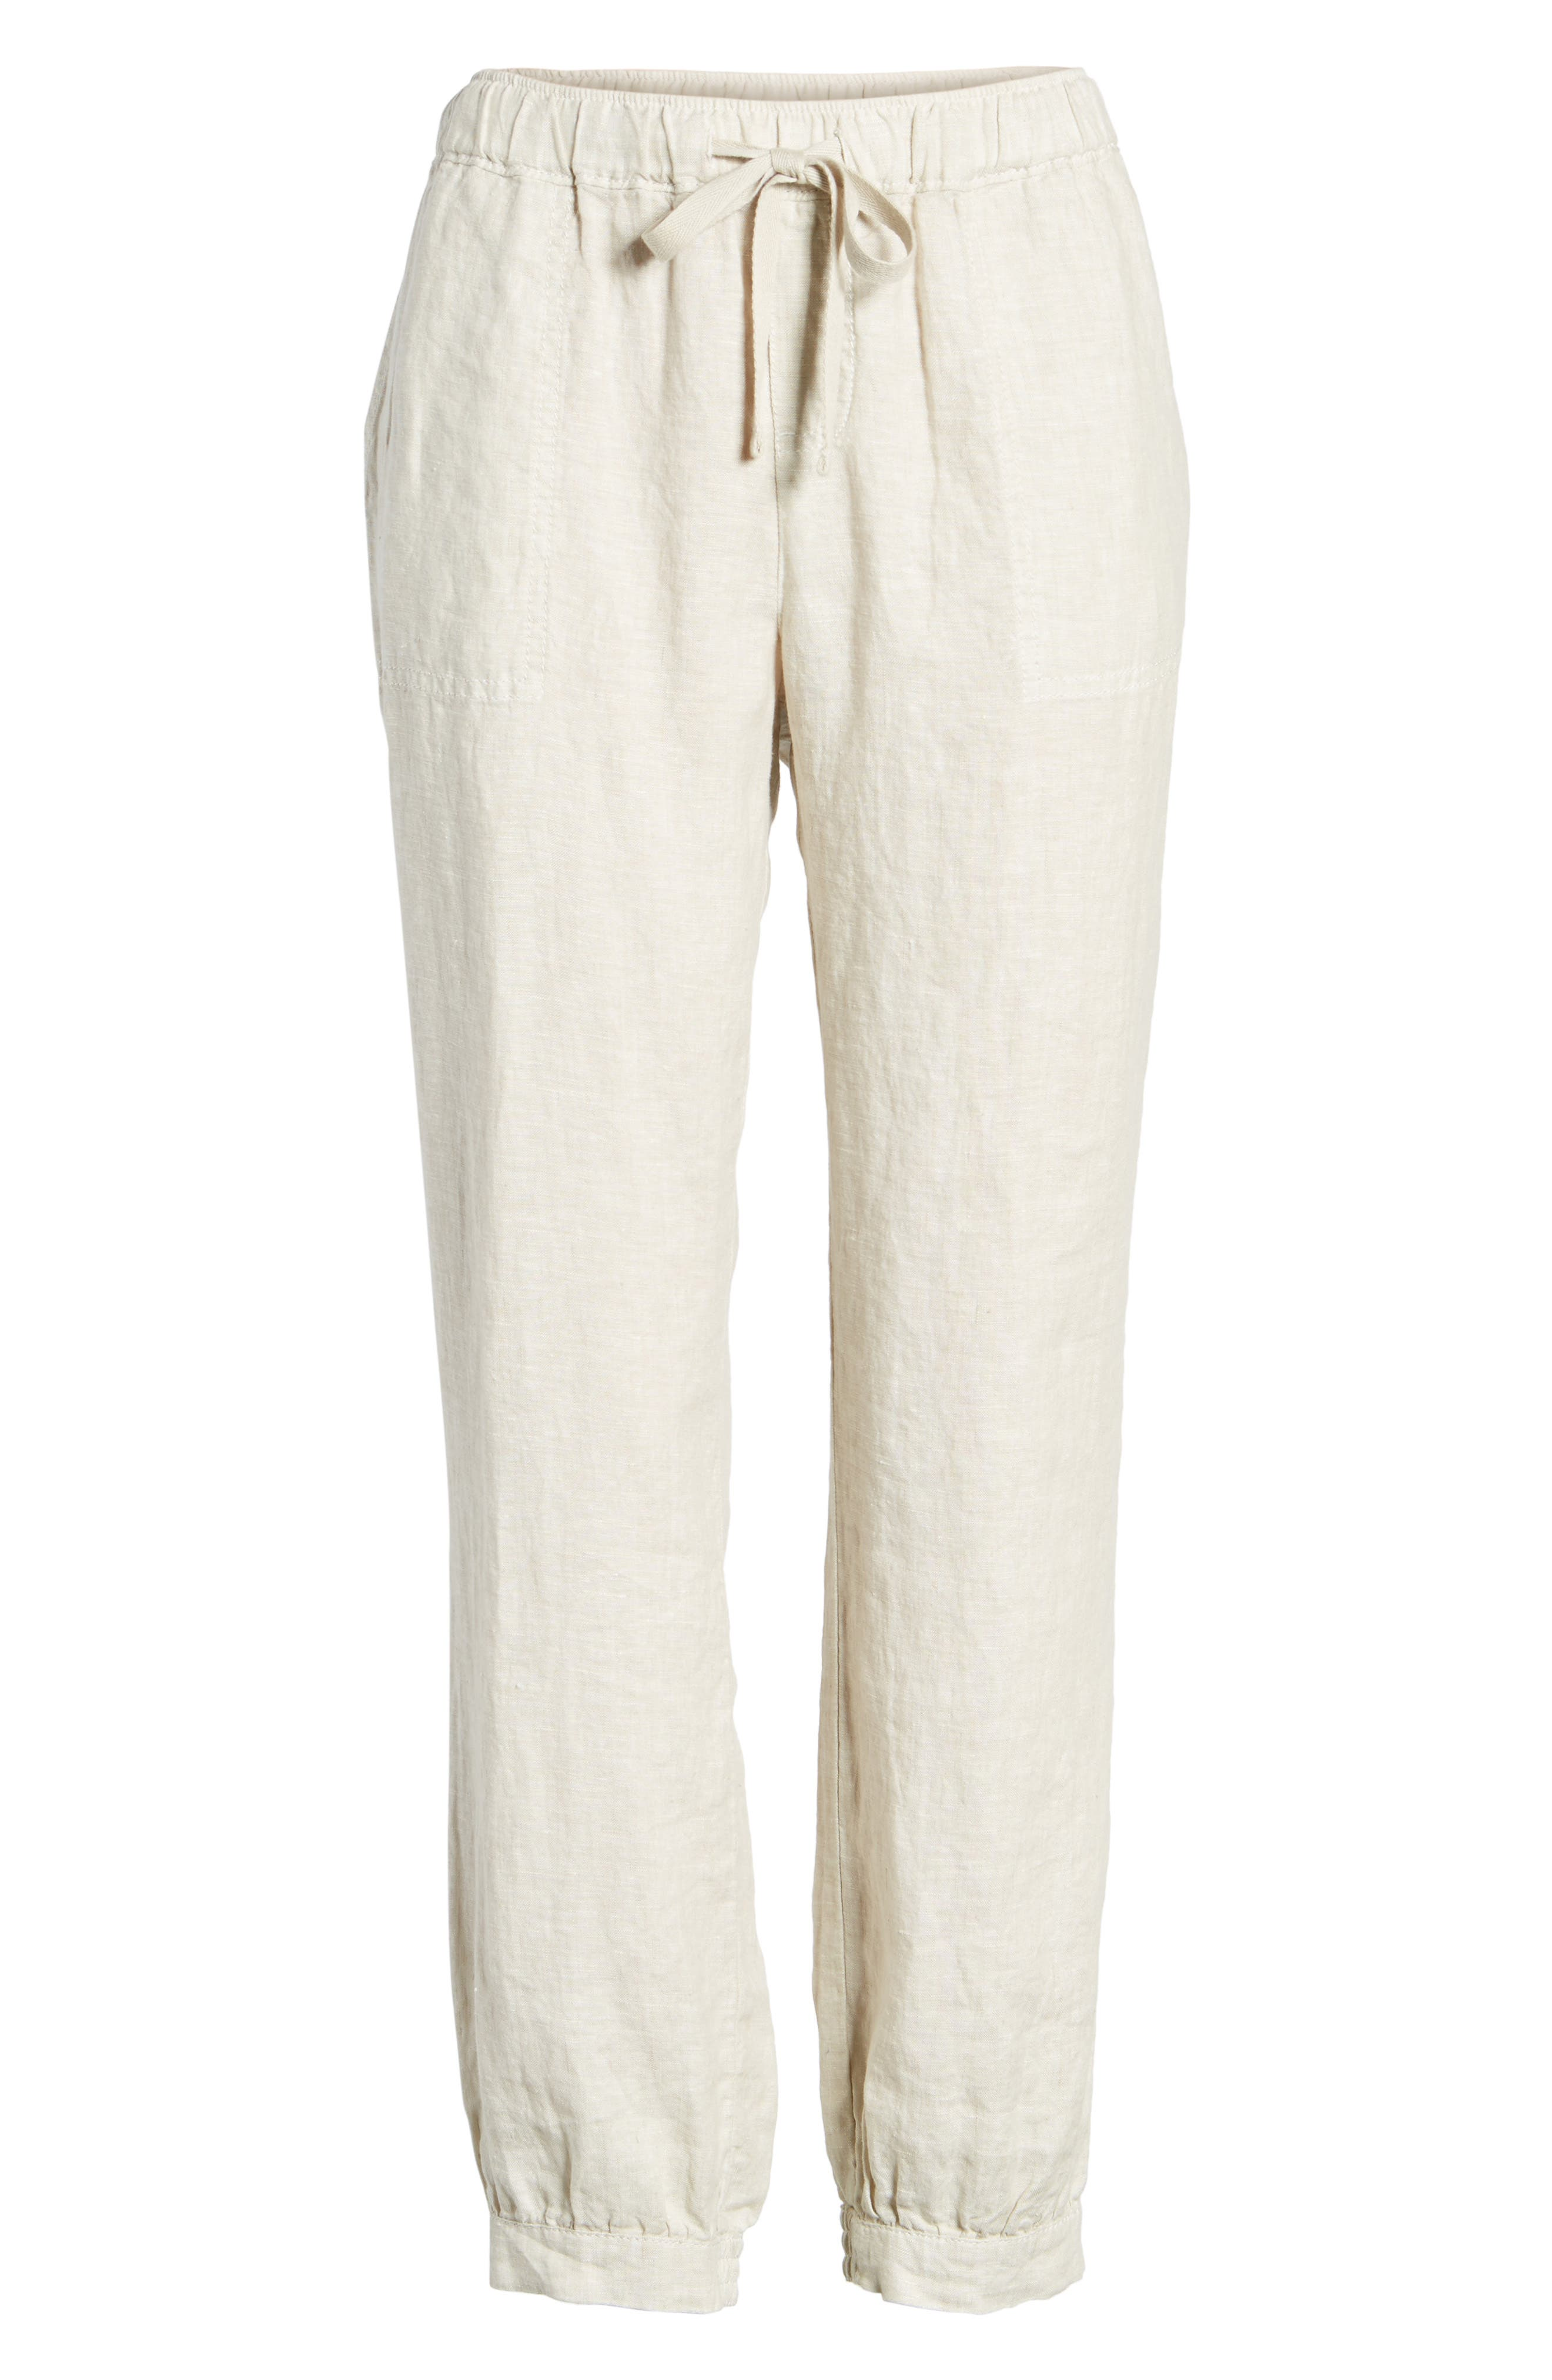 Crop Linen Joggers,                             Alternate thumbnail 6, color,                             260